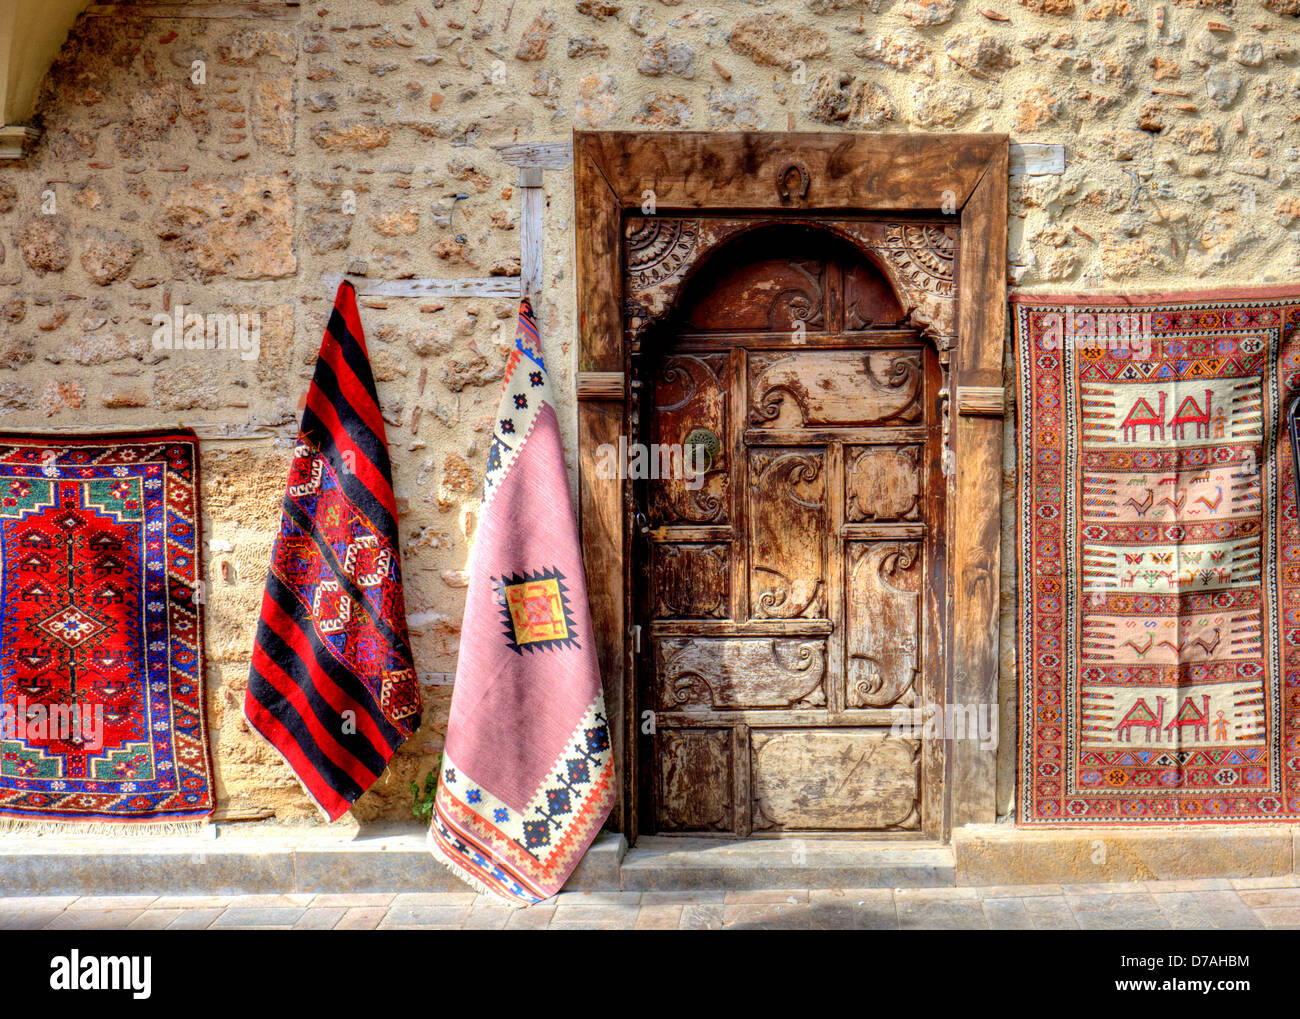 Street shopping antique carpets display with old carved doorway. - Stock Image